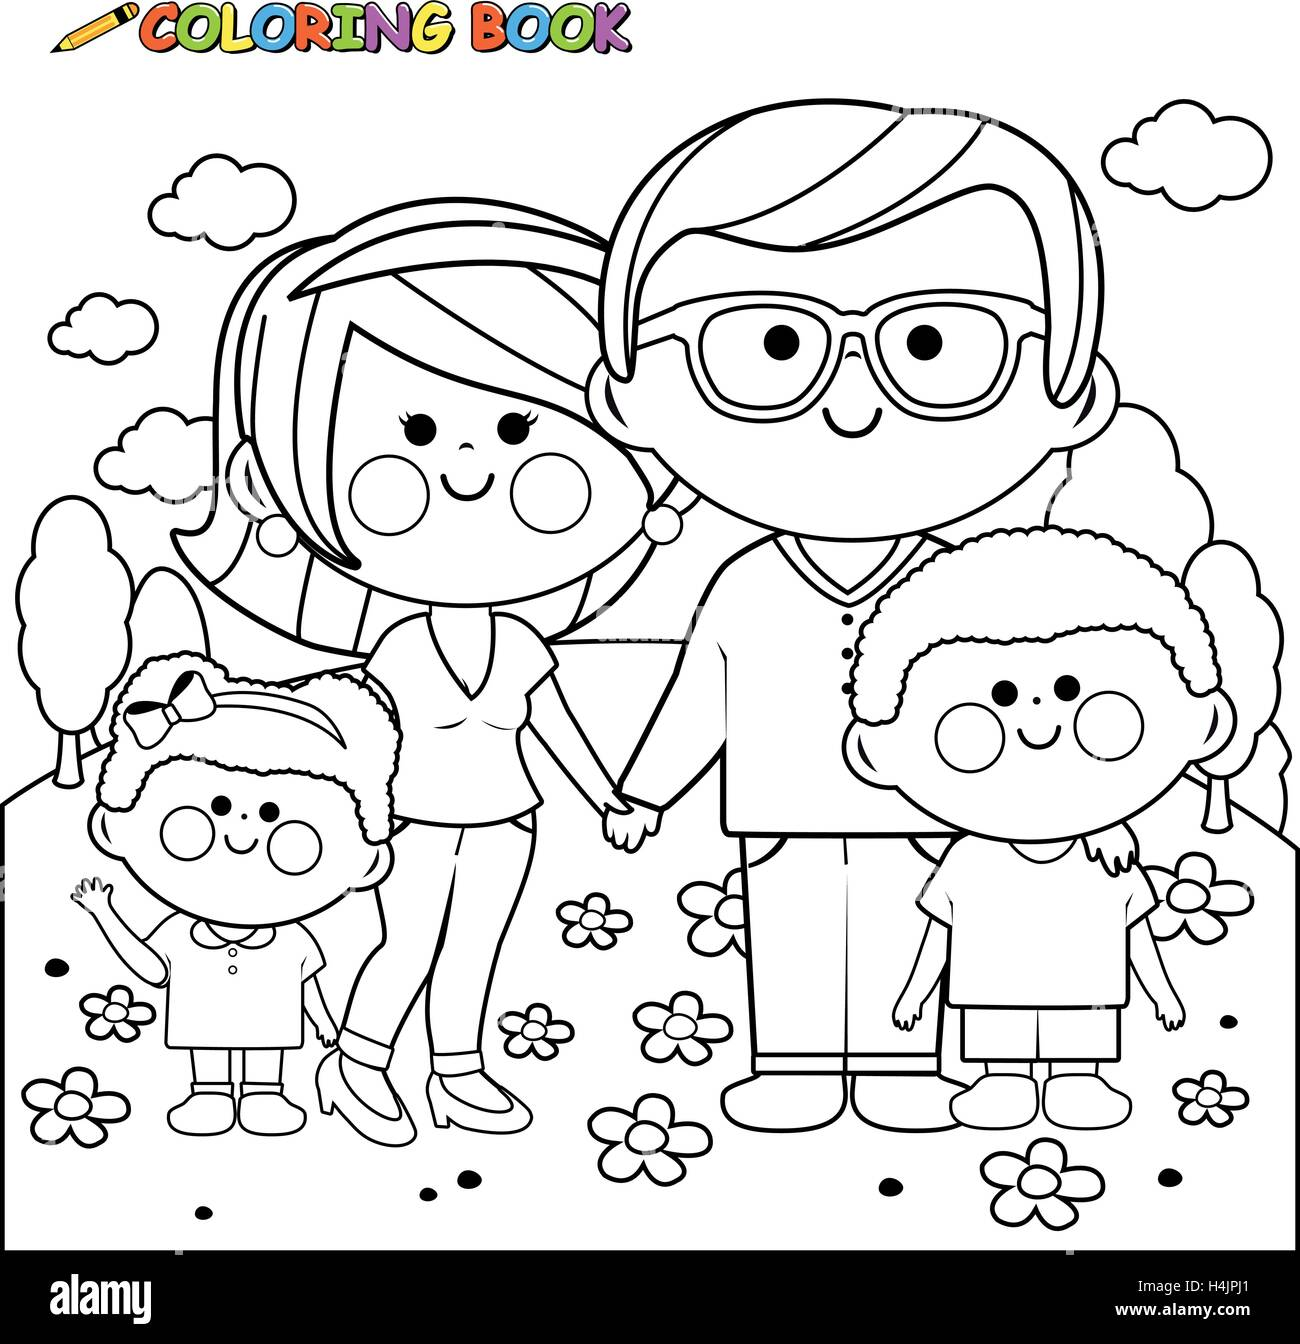 happy family at the park coloring book page H4JPJ1